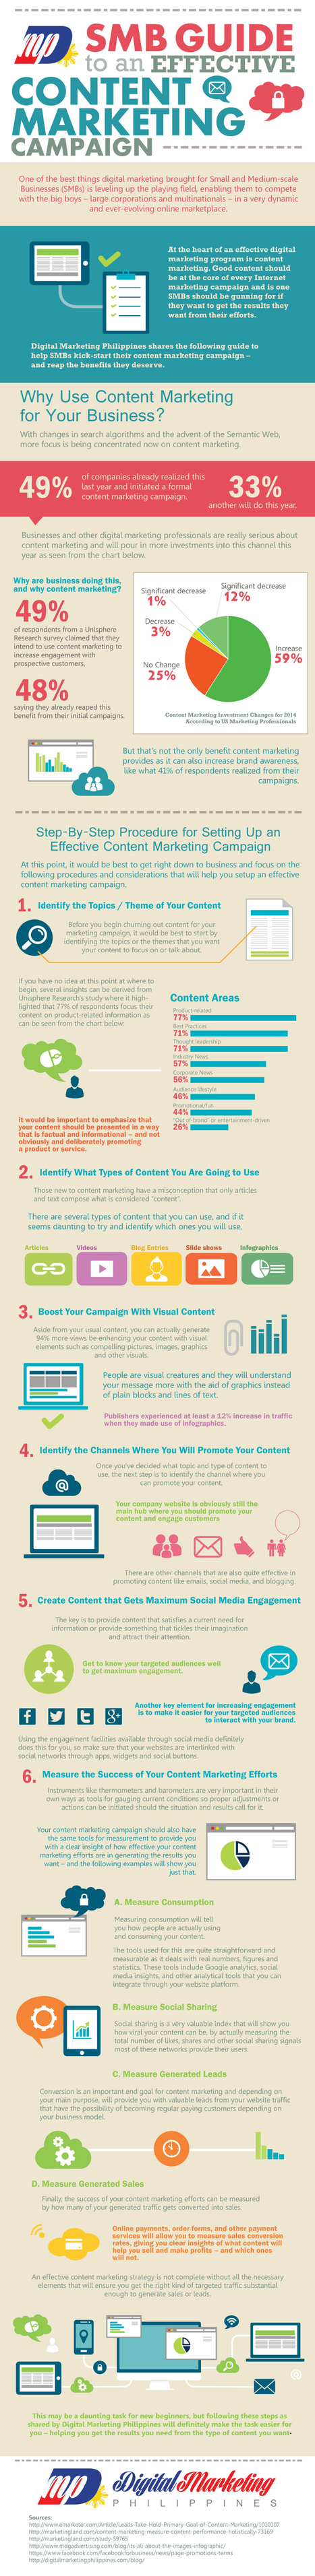 SMB Guide To An Effective Content Marketing Campaign (Infographic) | World of #SEO, #SMM, #ContentMarketing, #DigitalMarketing | Scoop.it